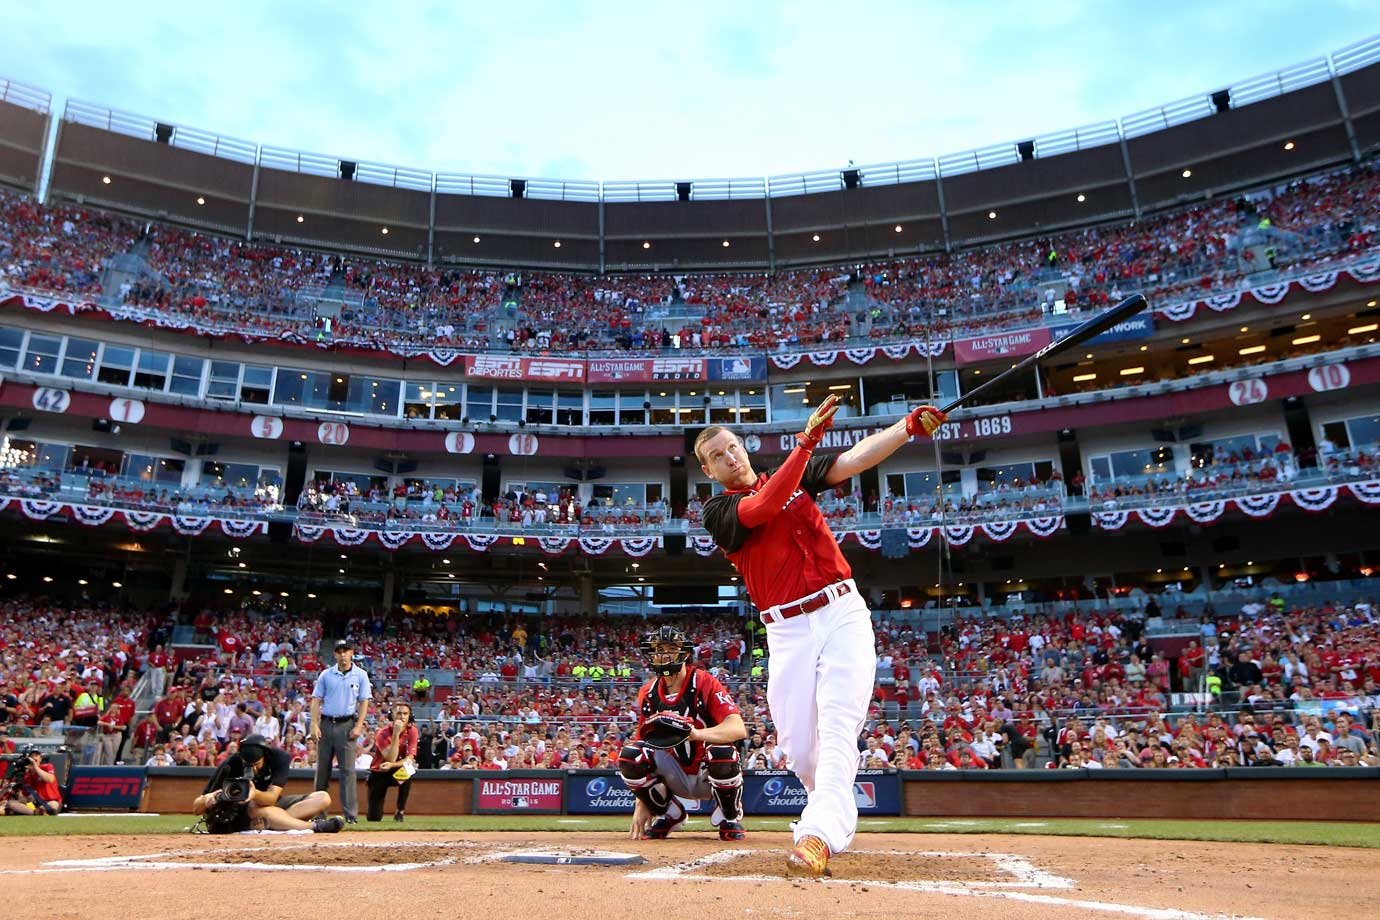 Reds third baseman Todd Frazier beat Dodgers rookie Joc Pederson 15-14, in front of his home crowd at Great American Ballpark. The new Gillette Home Run Derby rules proved to be a huge success, as Frazier won in bonus time, after knocking off Prince Fielder and Josh Donaldson in head-to-head matches.